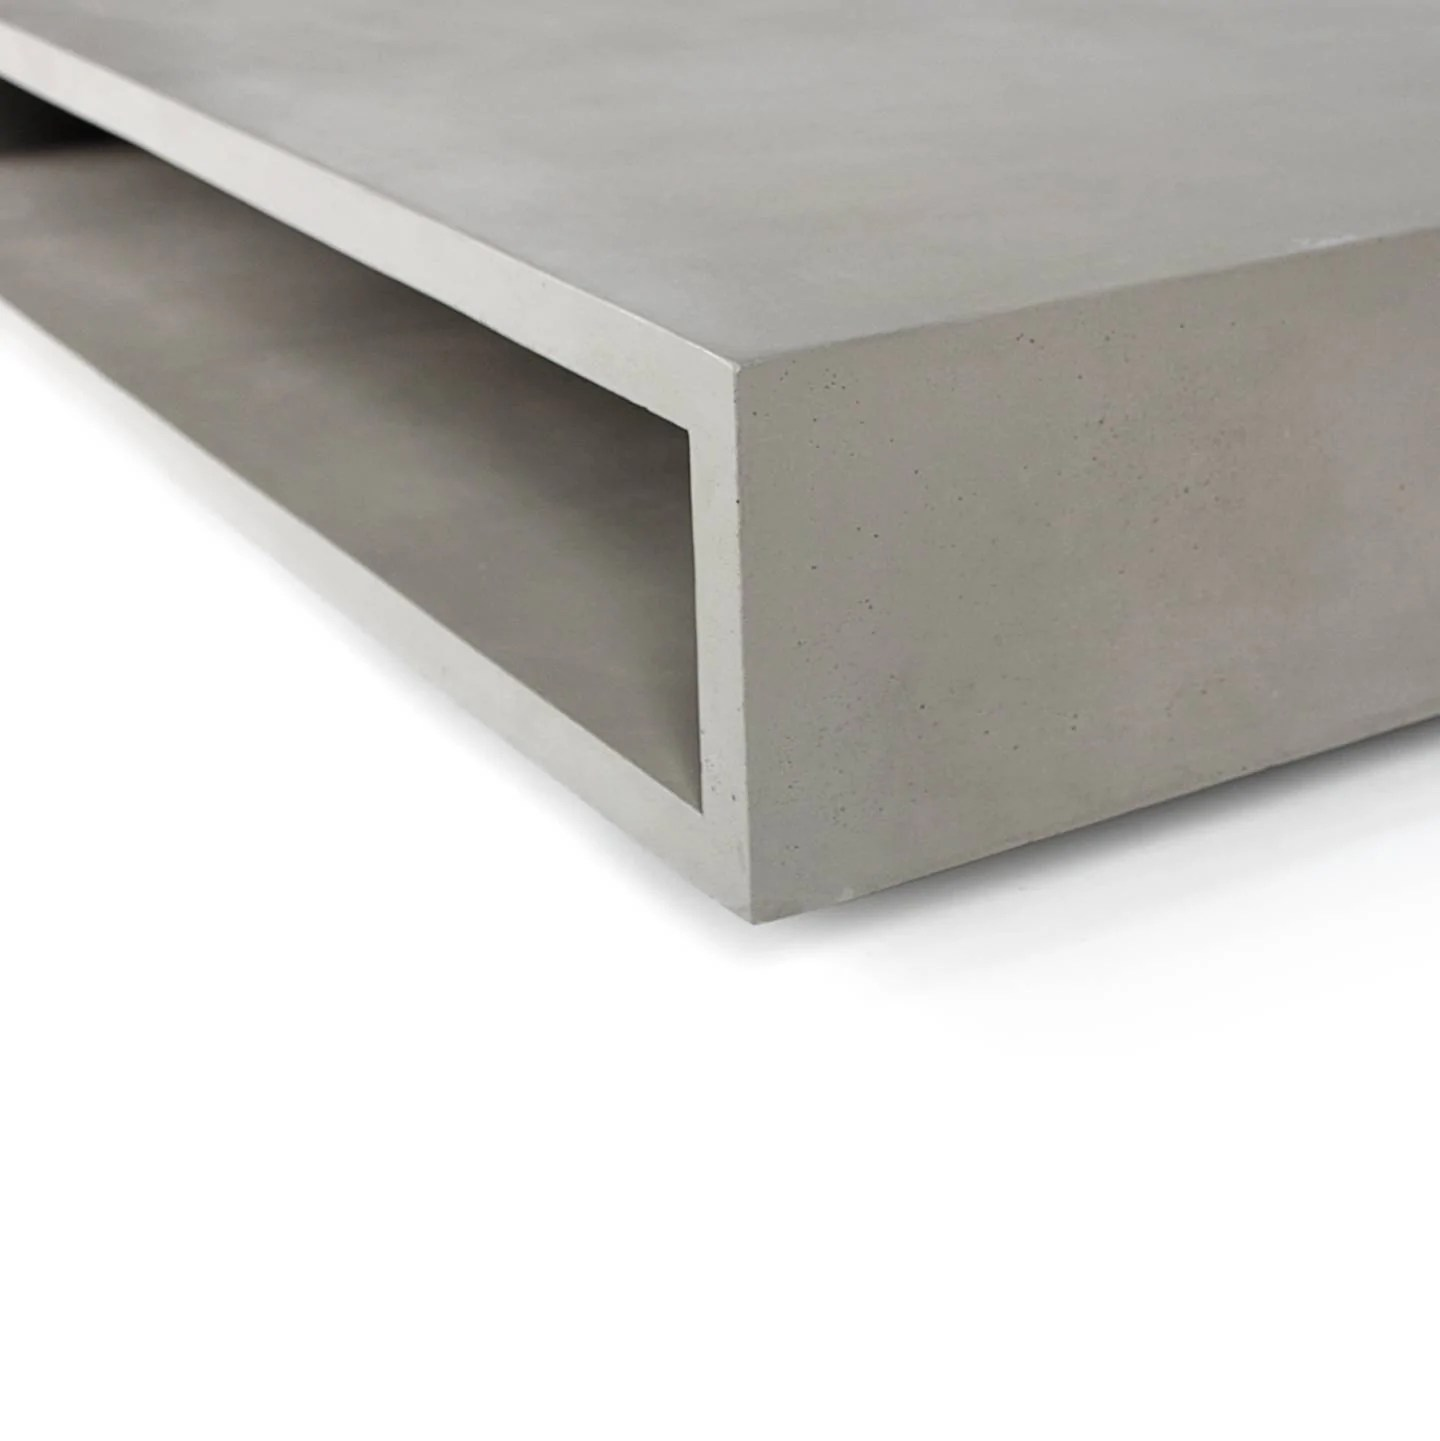 Table Basse En Beton Monobloc Xl Coffee Table By Lyon Béton